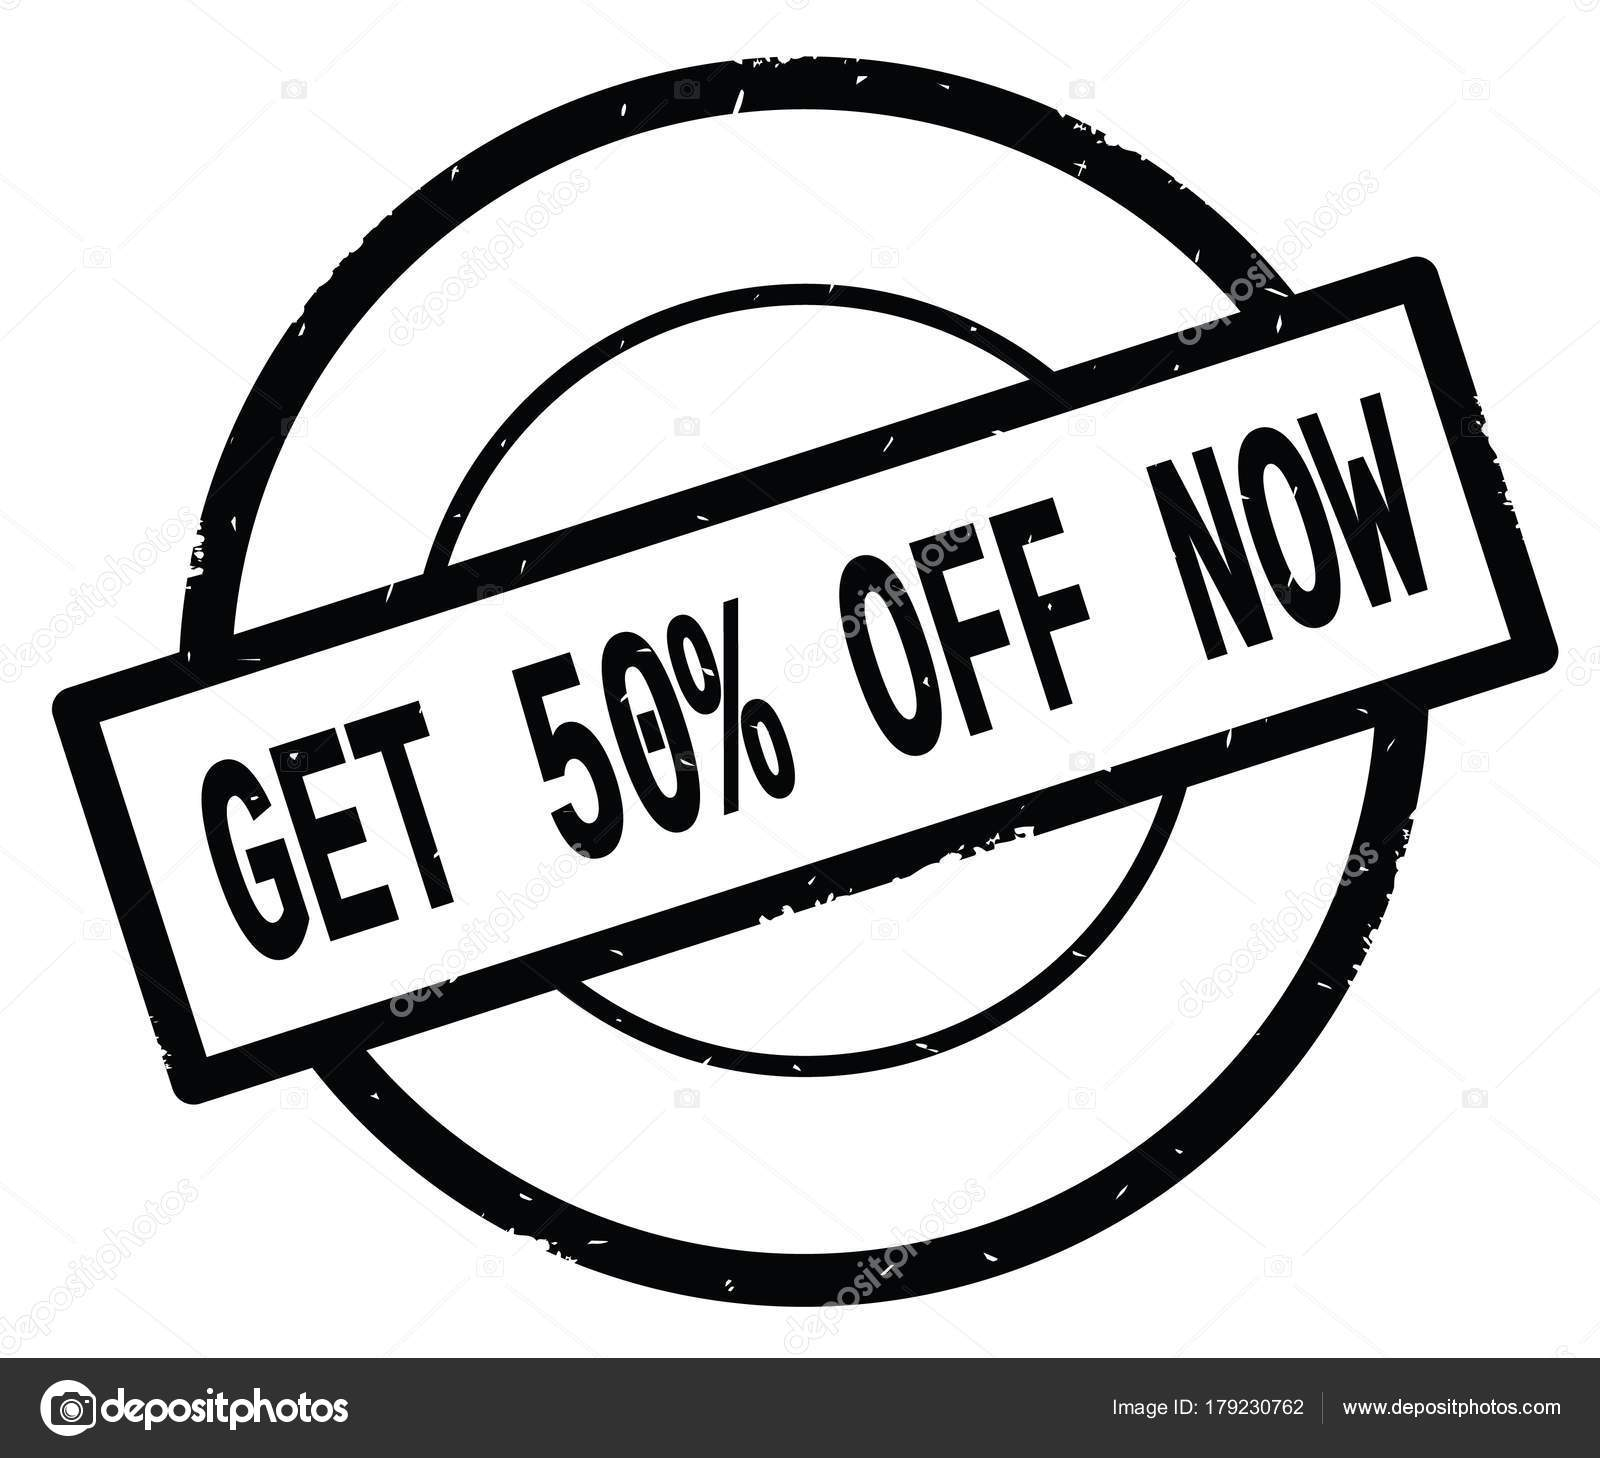 GET 50 PERCENT OFF NOW text, written on black simple circle